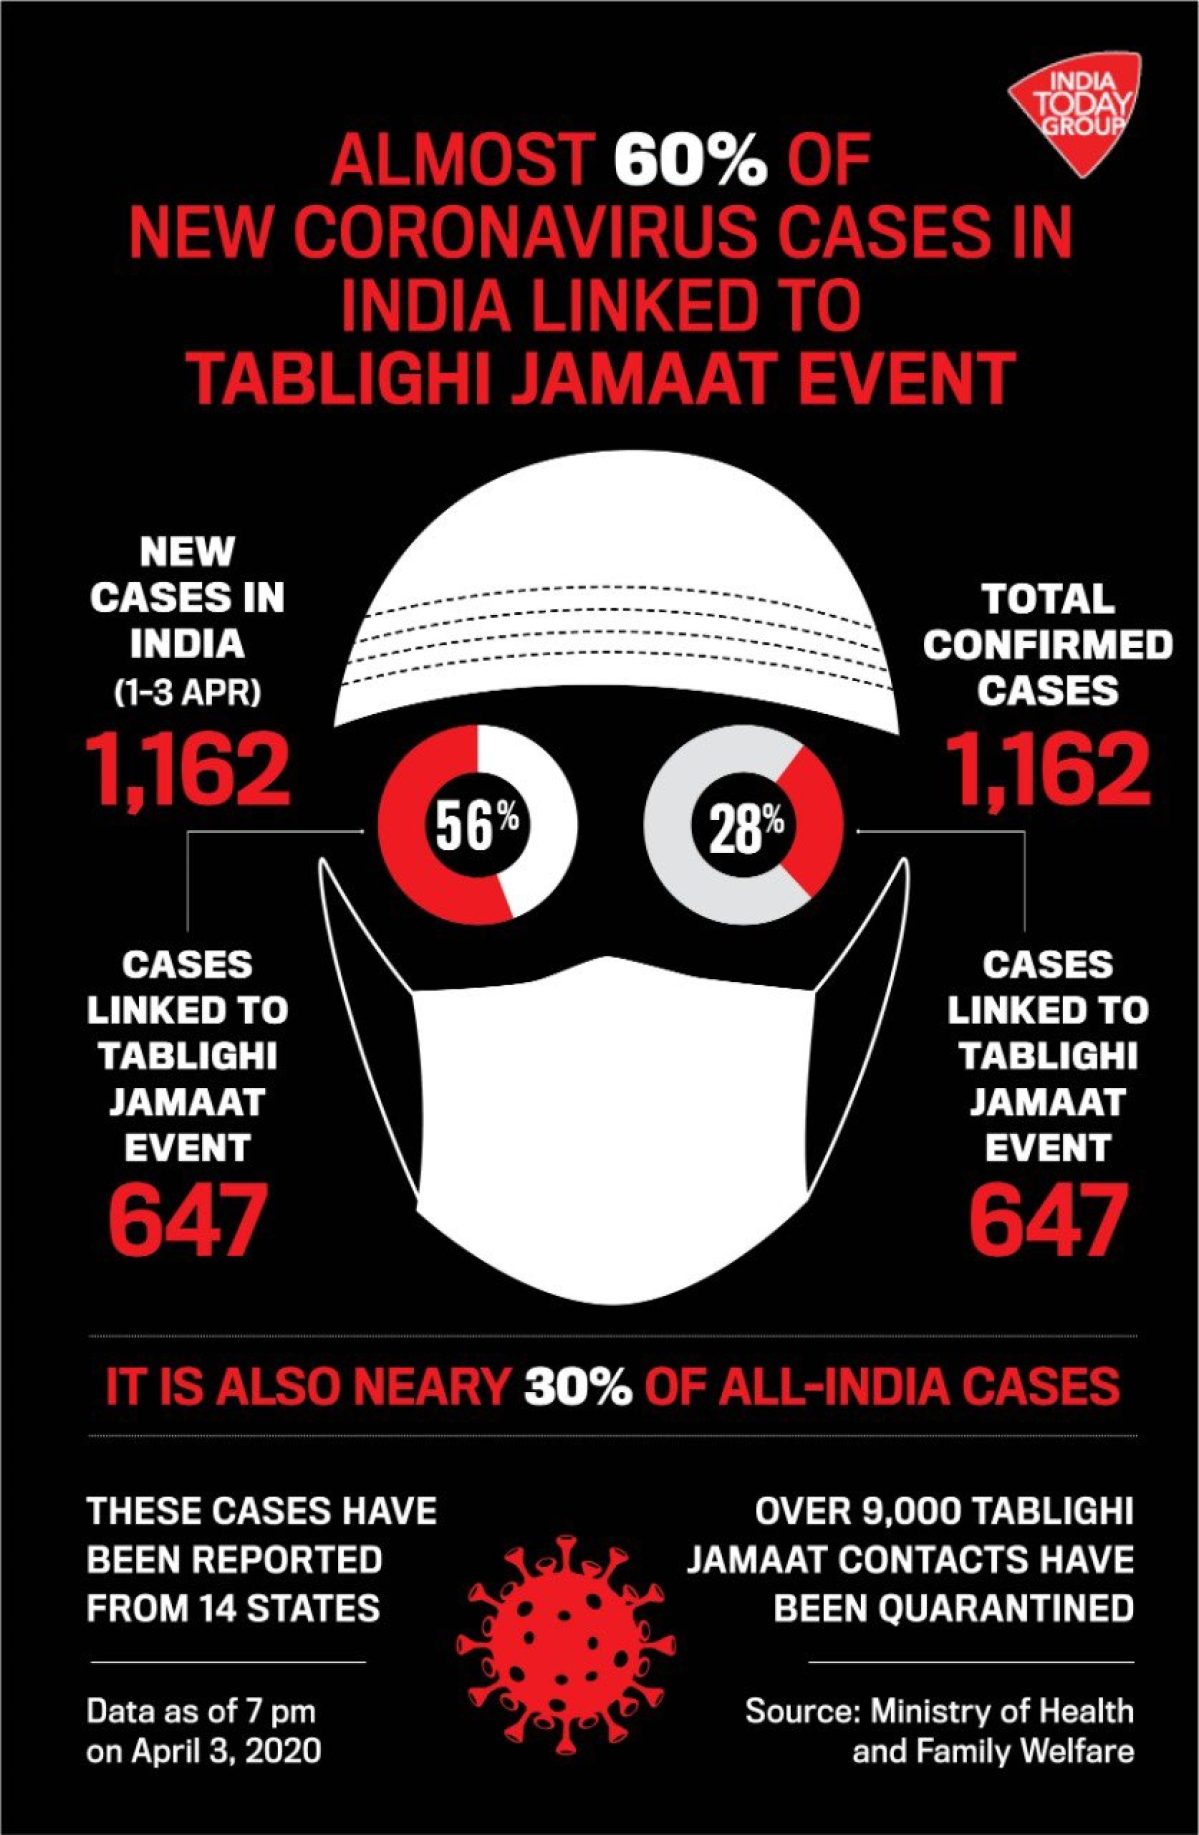 India Today accused of sharing 'Islamophobic' graphic on coronavirus and Tablighi Jamaat event